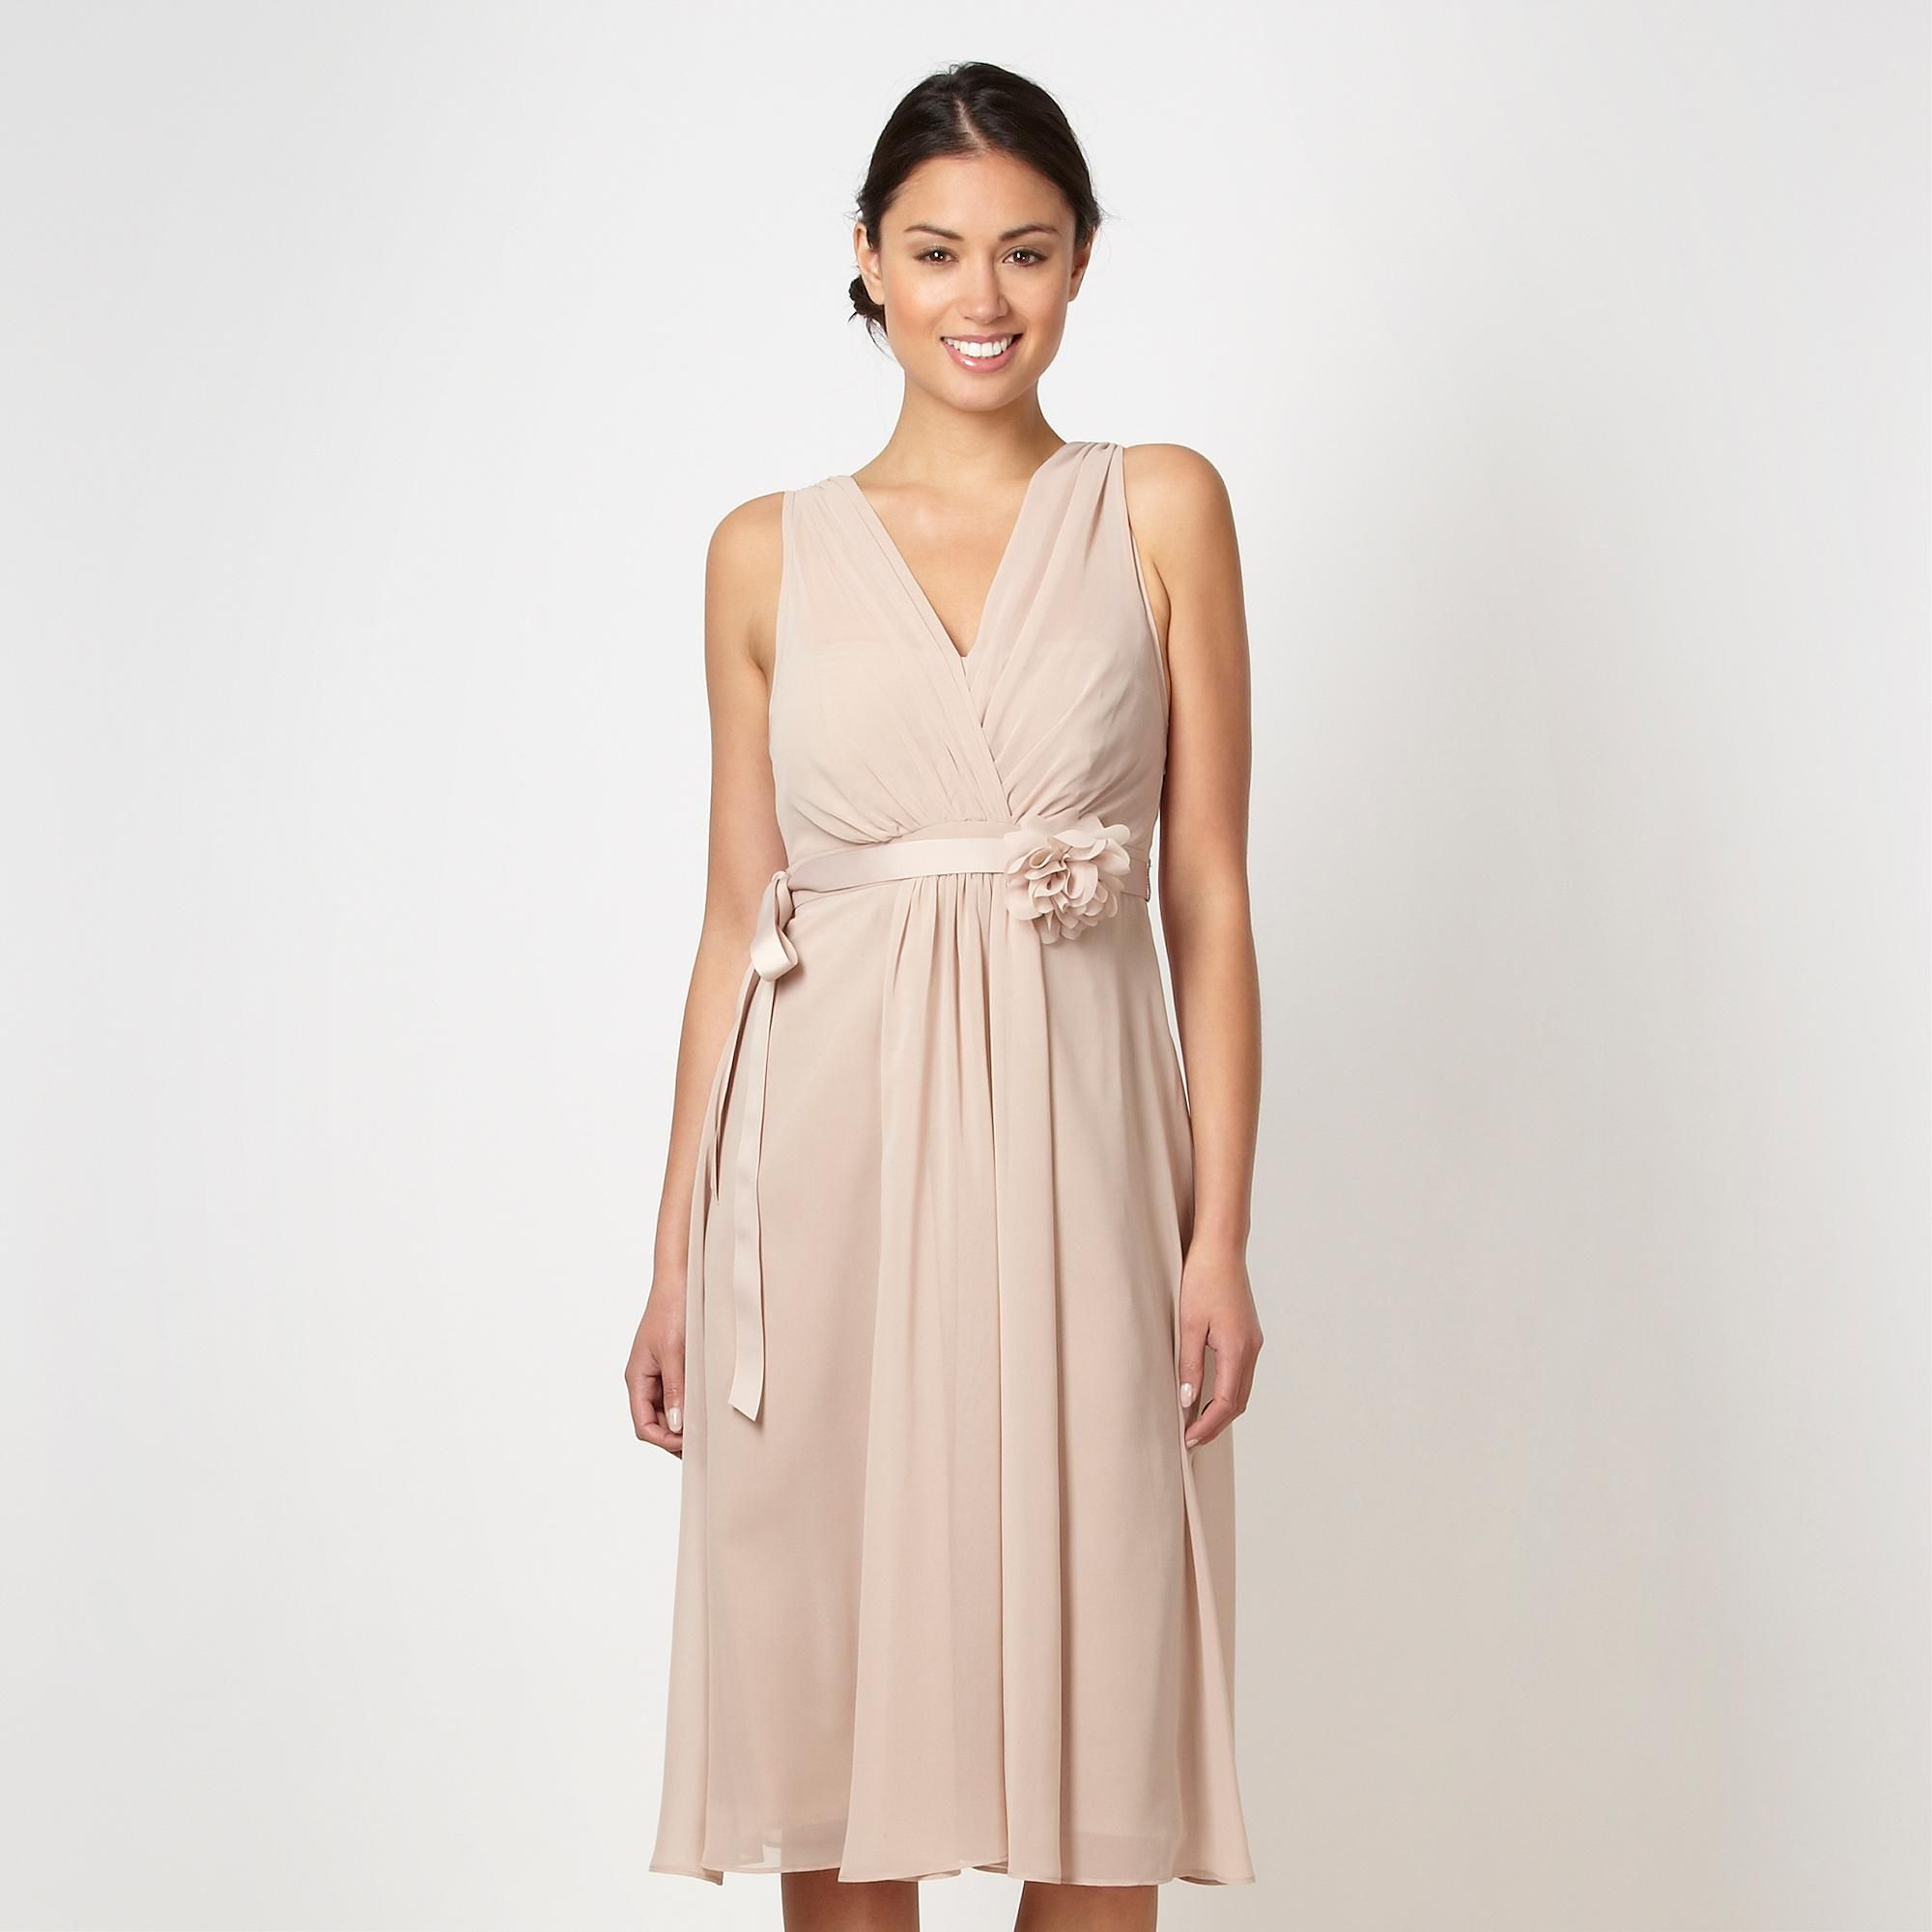 Bridesmaid dresses in debenhams image collections braidsmaid light brown ruched corsage dress bridesmaid dresses debenhams light brown ruched corsage dress bridesmaid dresses debenhams ombrellifo Choice Image